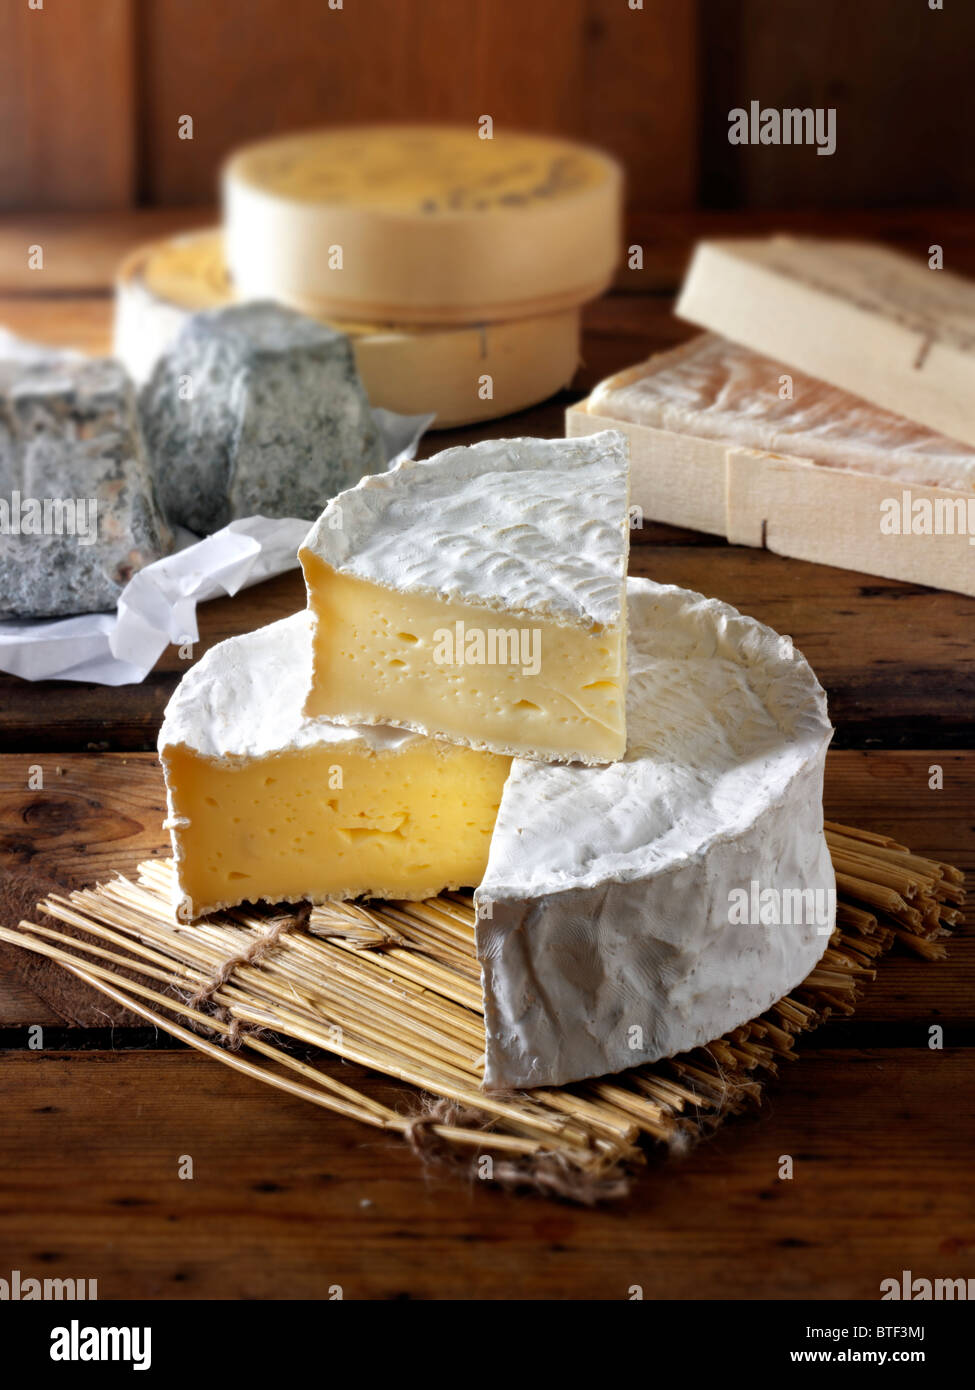 Coulommier fromage traditionnel français Photo Stock